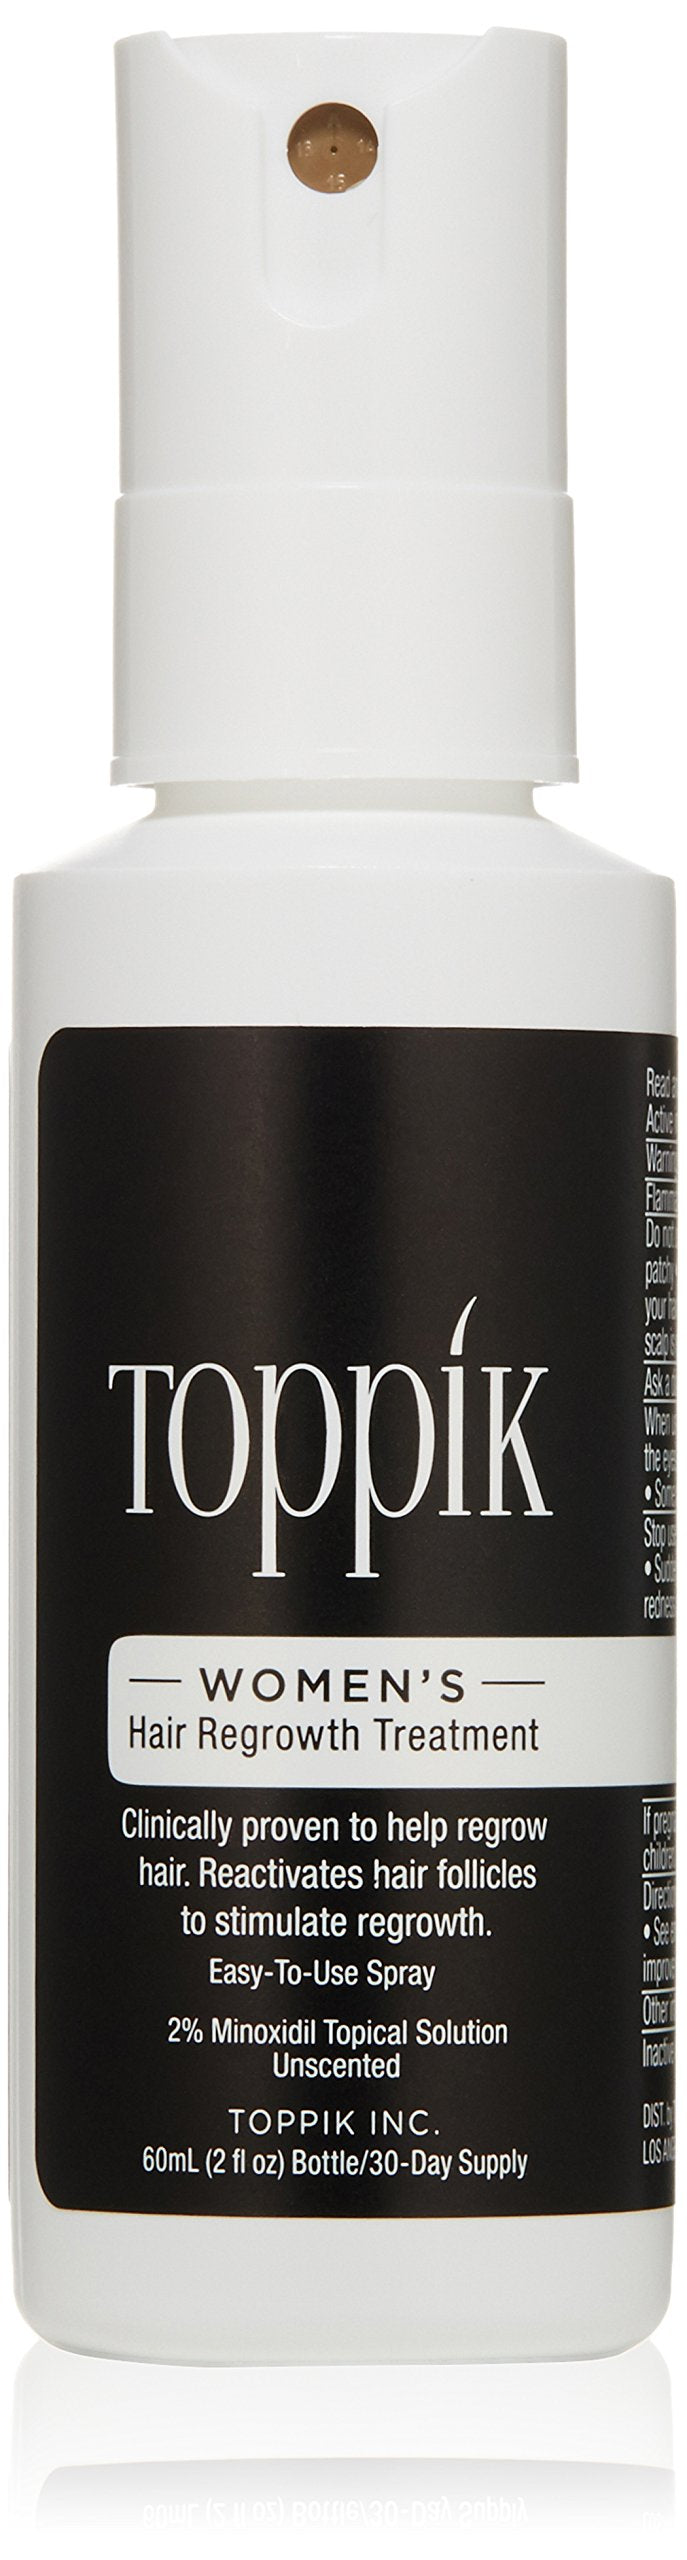 Spencer Forrest Toppik  Hair Regrowth Treatment, 2 oz